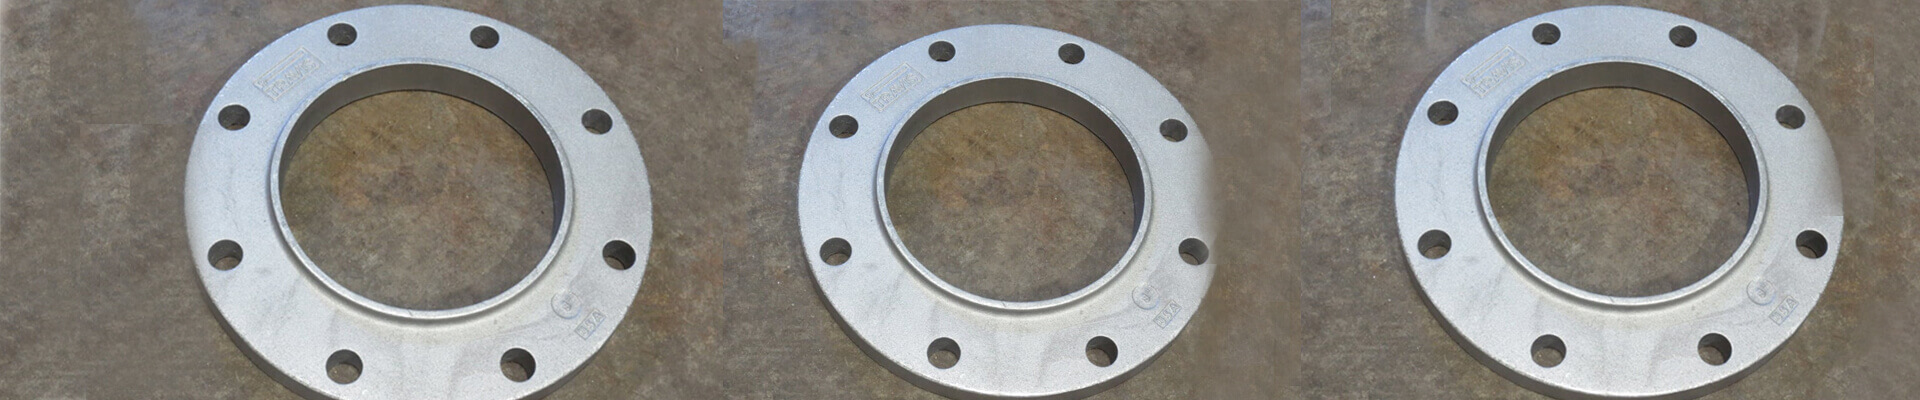 Spacer Flanges banner